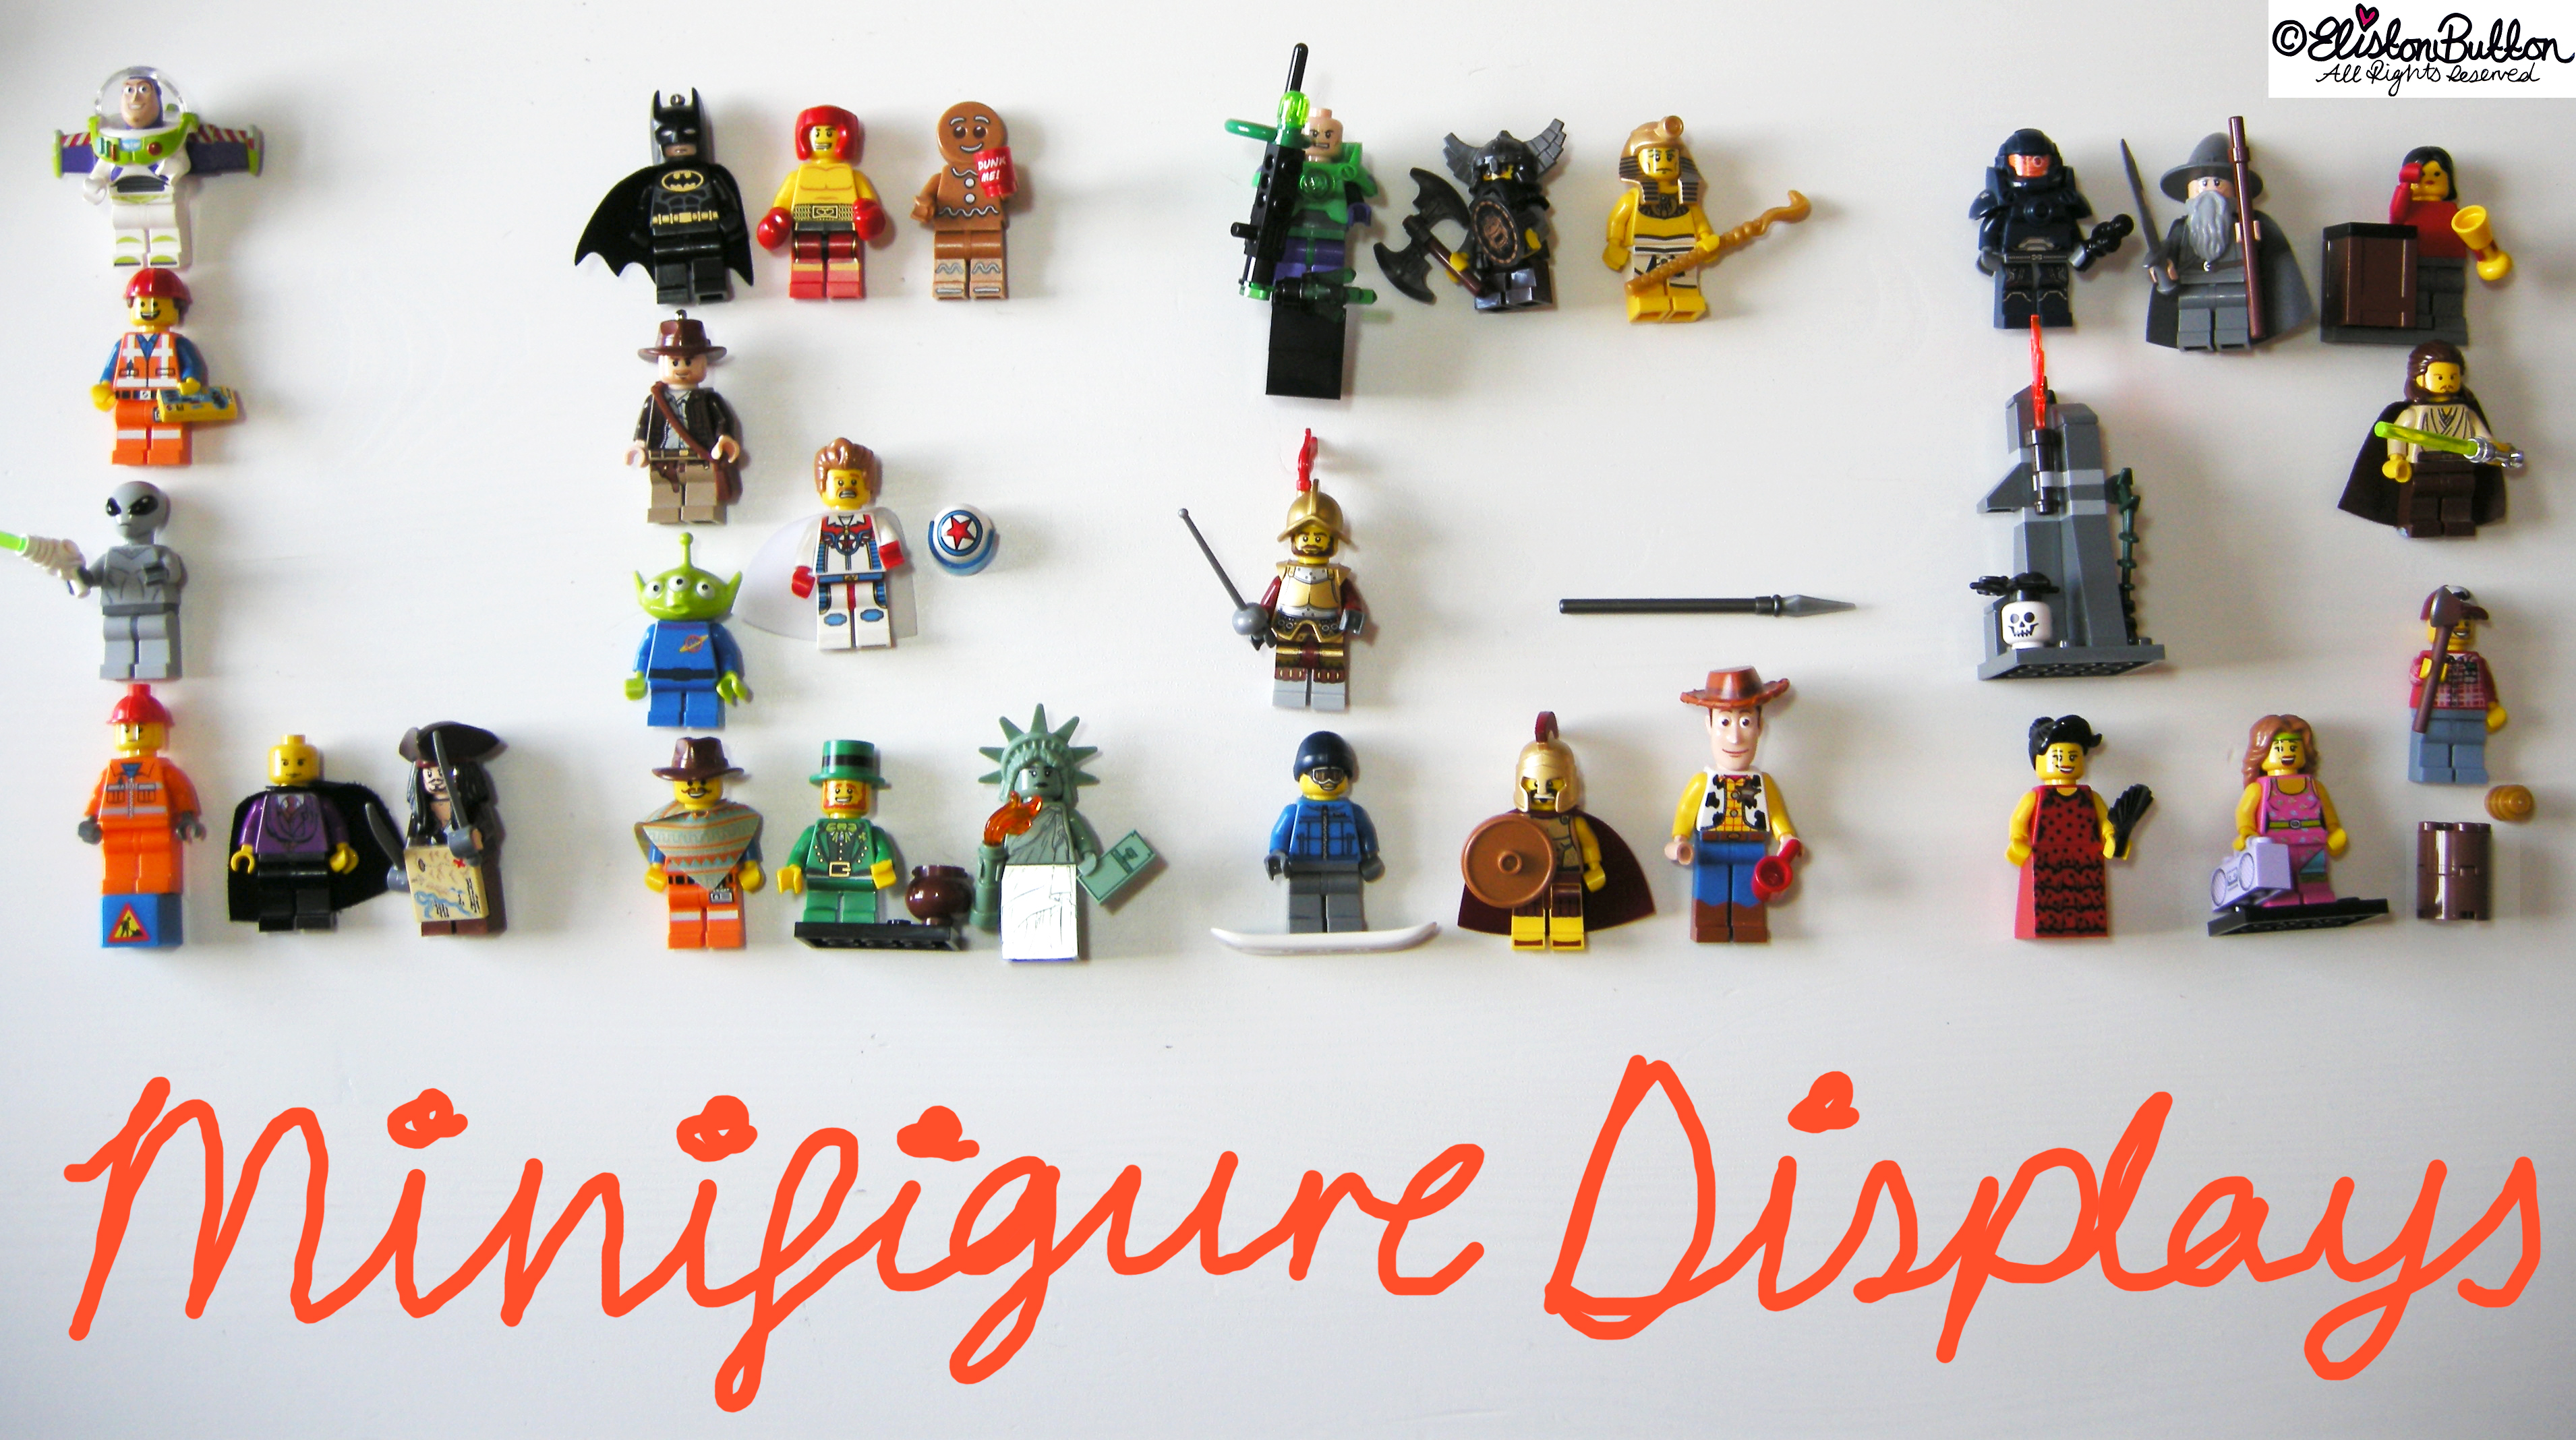 Lego Minifigure Displays at www.elistonbutton.com - Eliston Button - That Crafty Kid – Art, Design, Craft & Adventure.